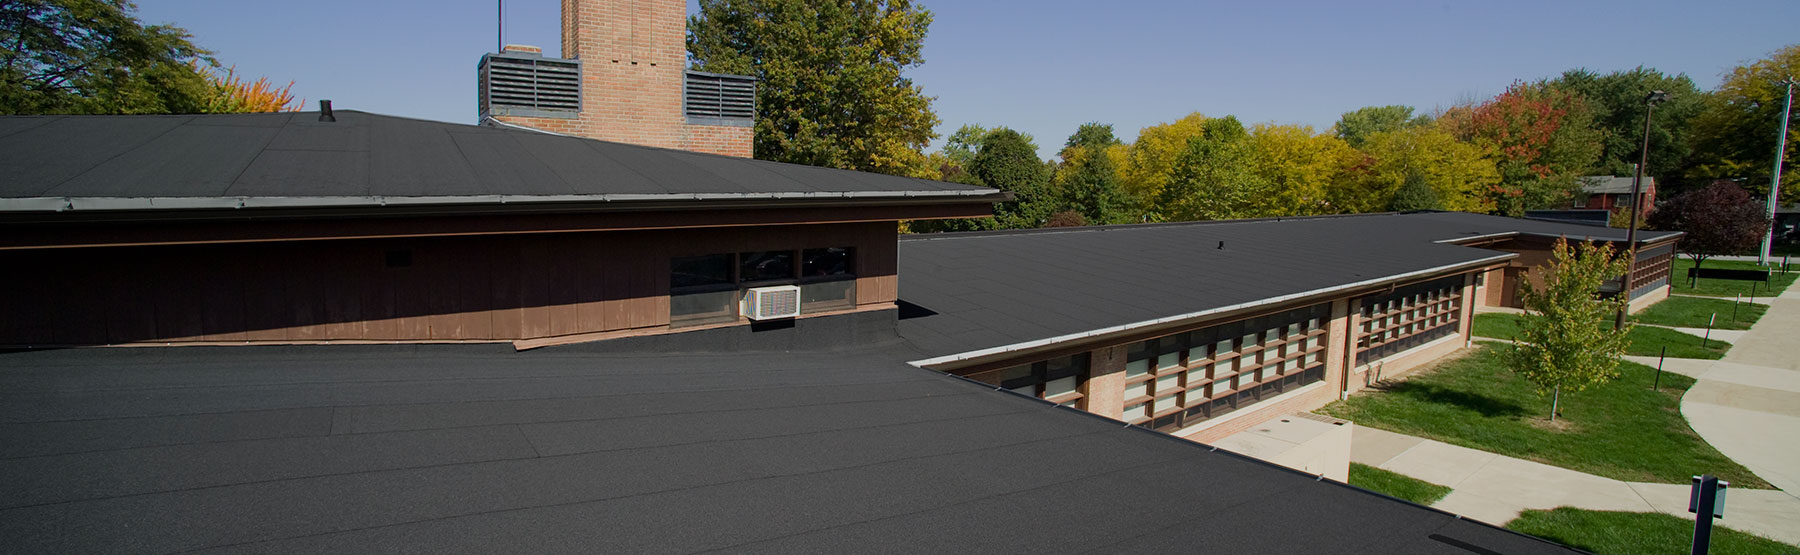 commercial-roofing-professionals-northern-va-dc